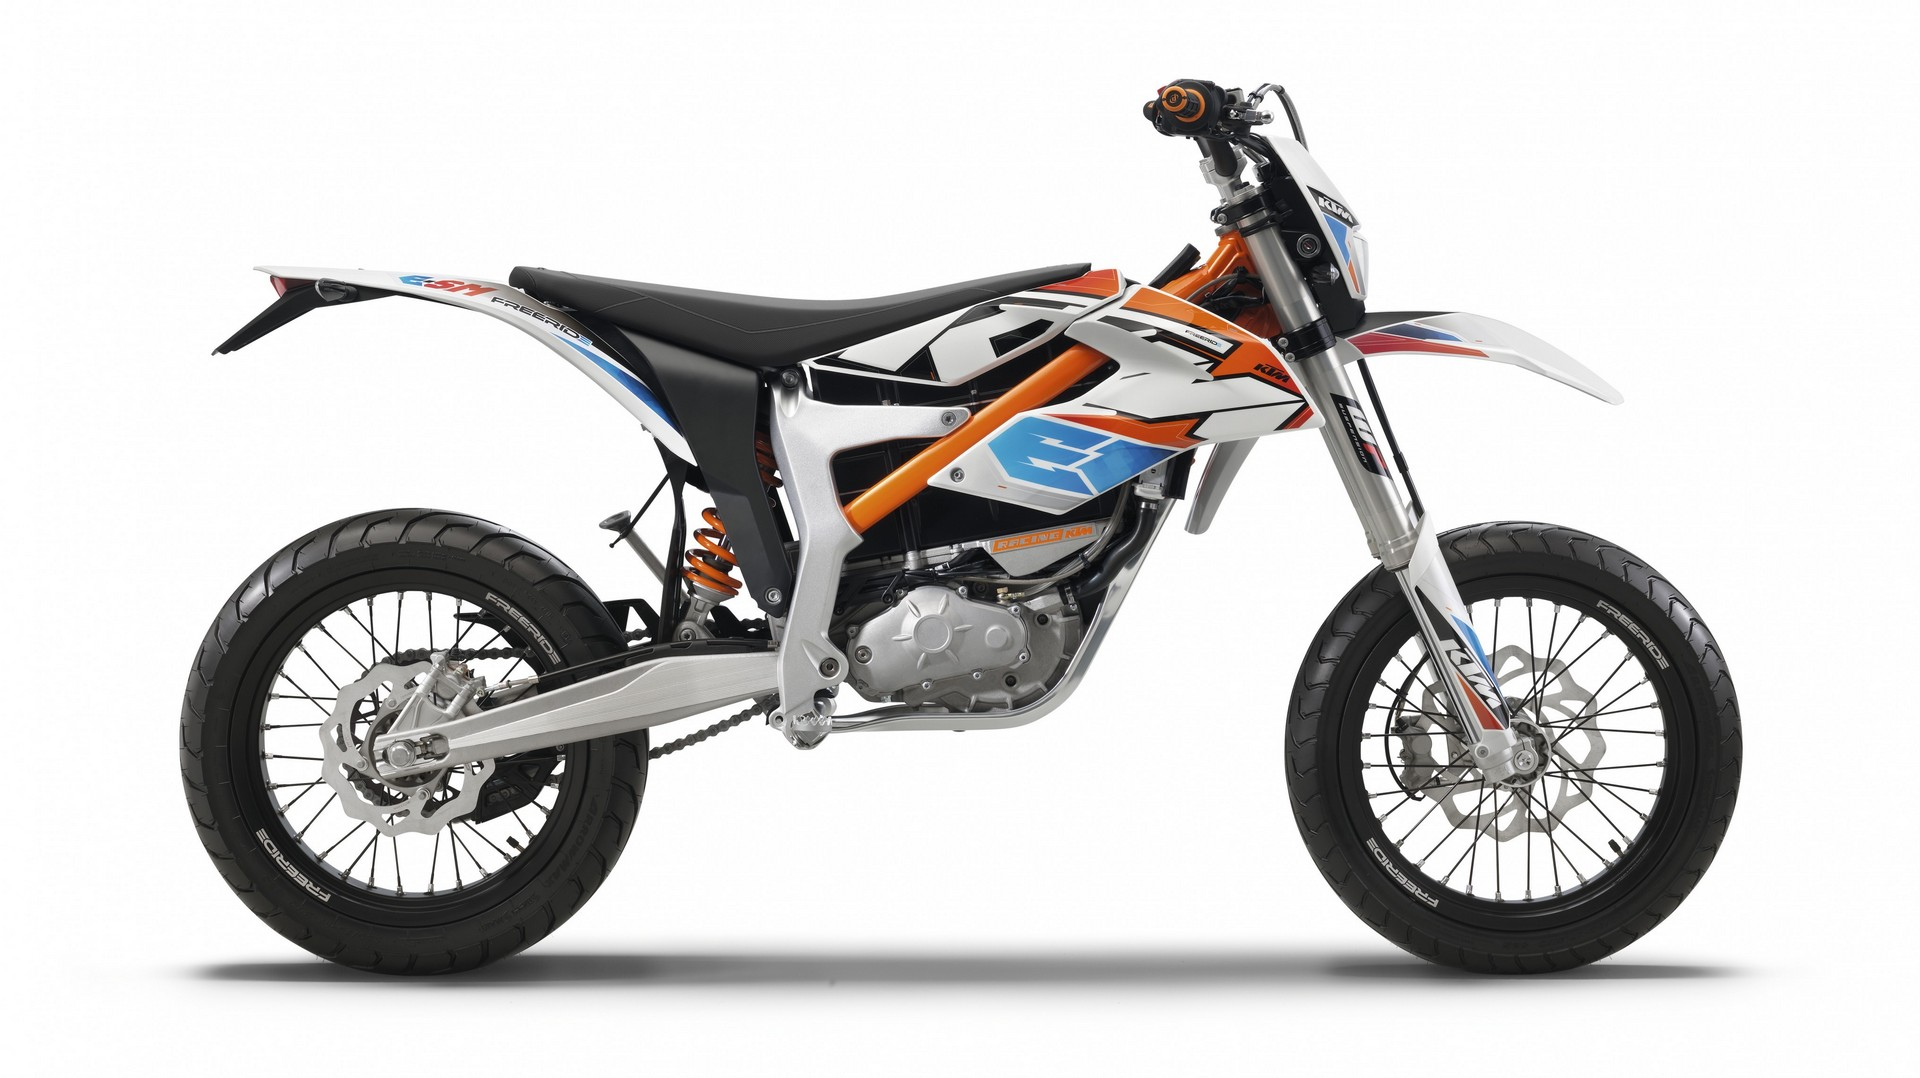 Ktm Freeride E Sm >> Ktm Freeride E Sm Launched In Dealerships This Month But Not In